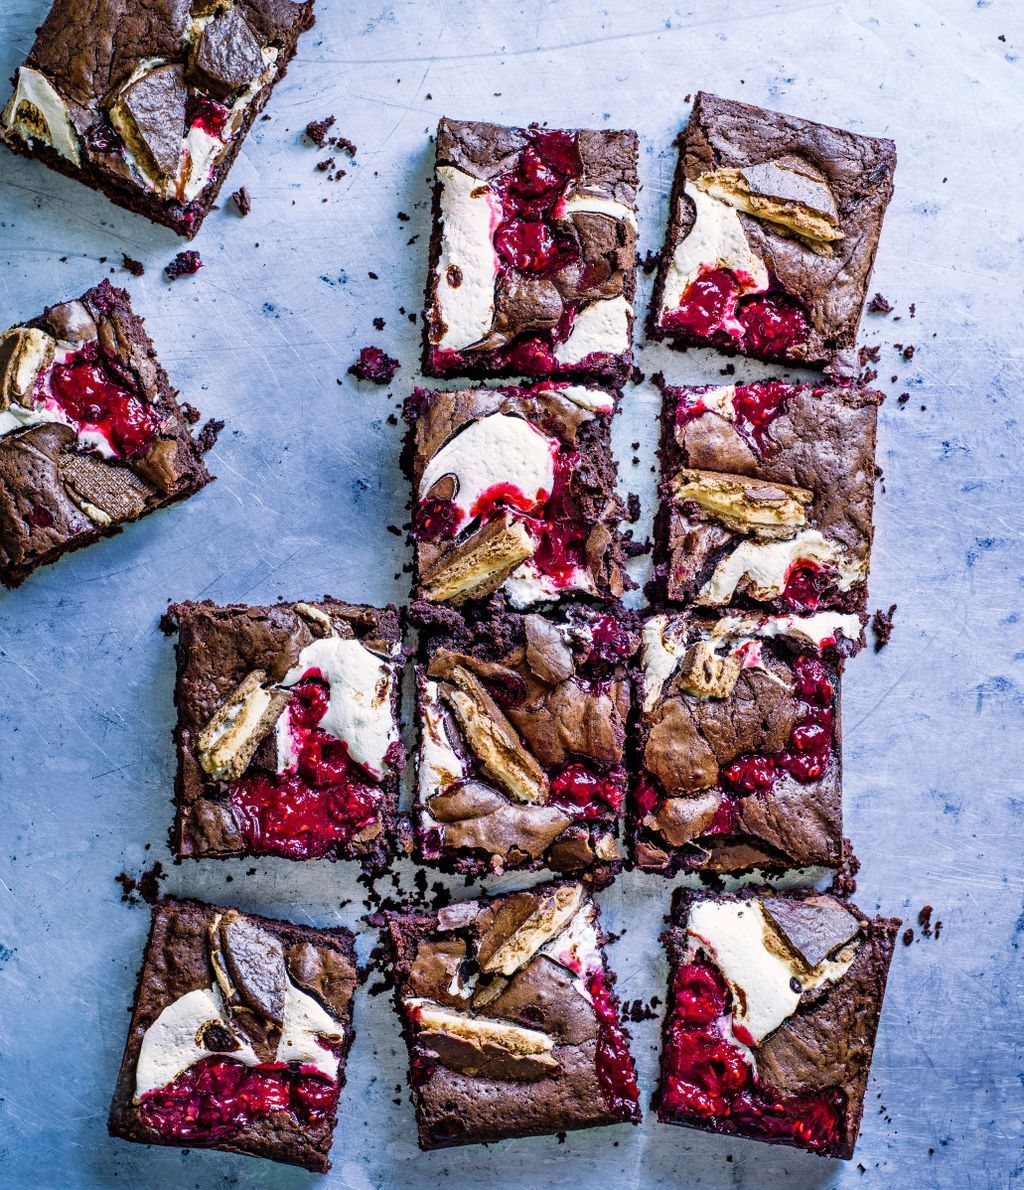 Were going retro with our brownies try this fun chocolatey recipe: http://buff.ly/2qWWQiE #chocolate #http://browniespic.twitter.com/ipivj5SZG1